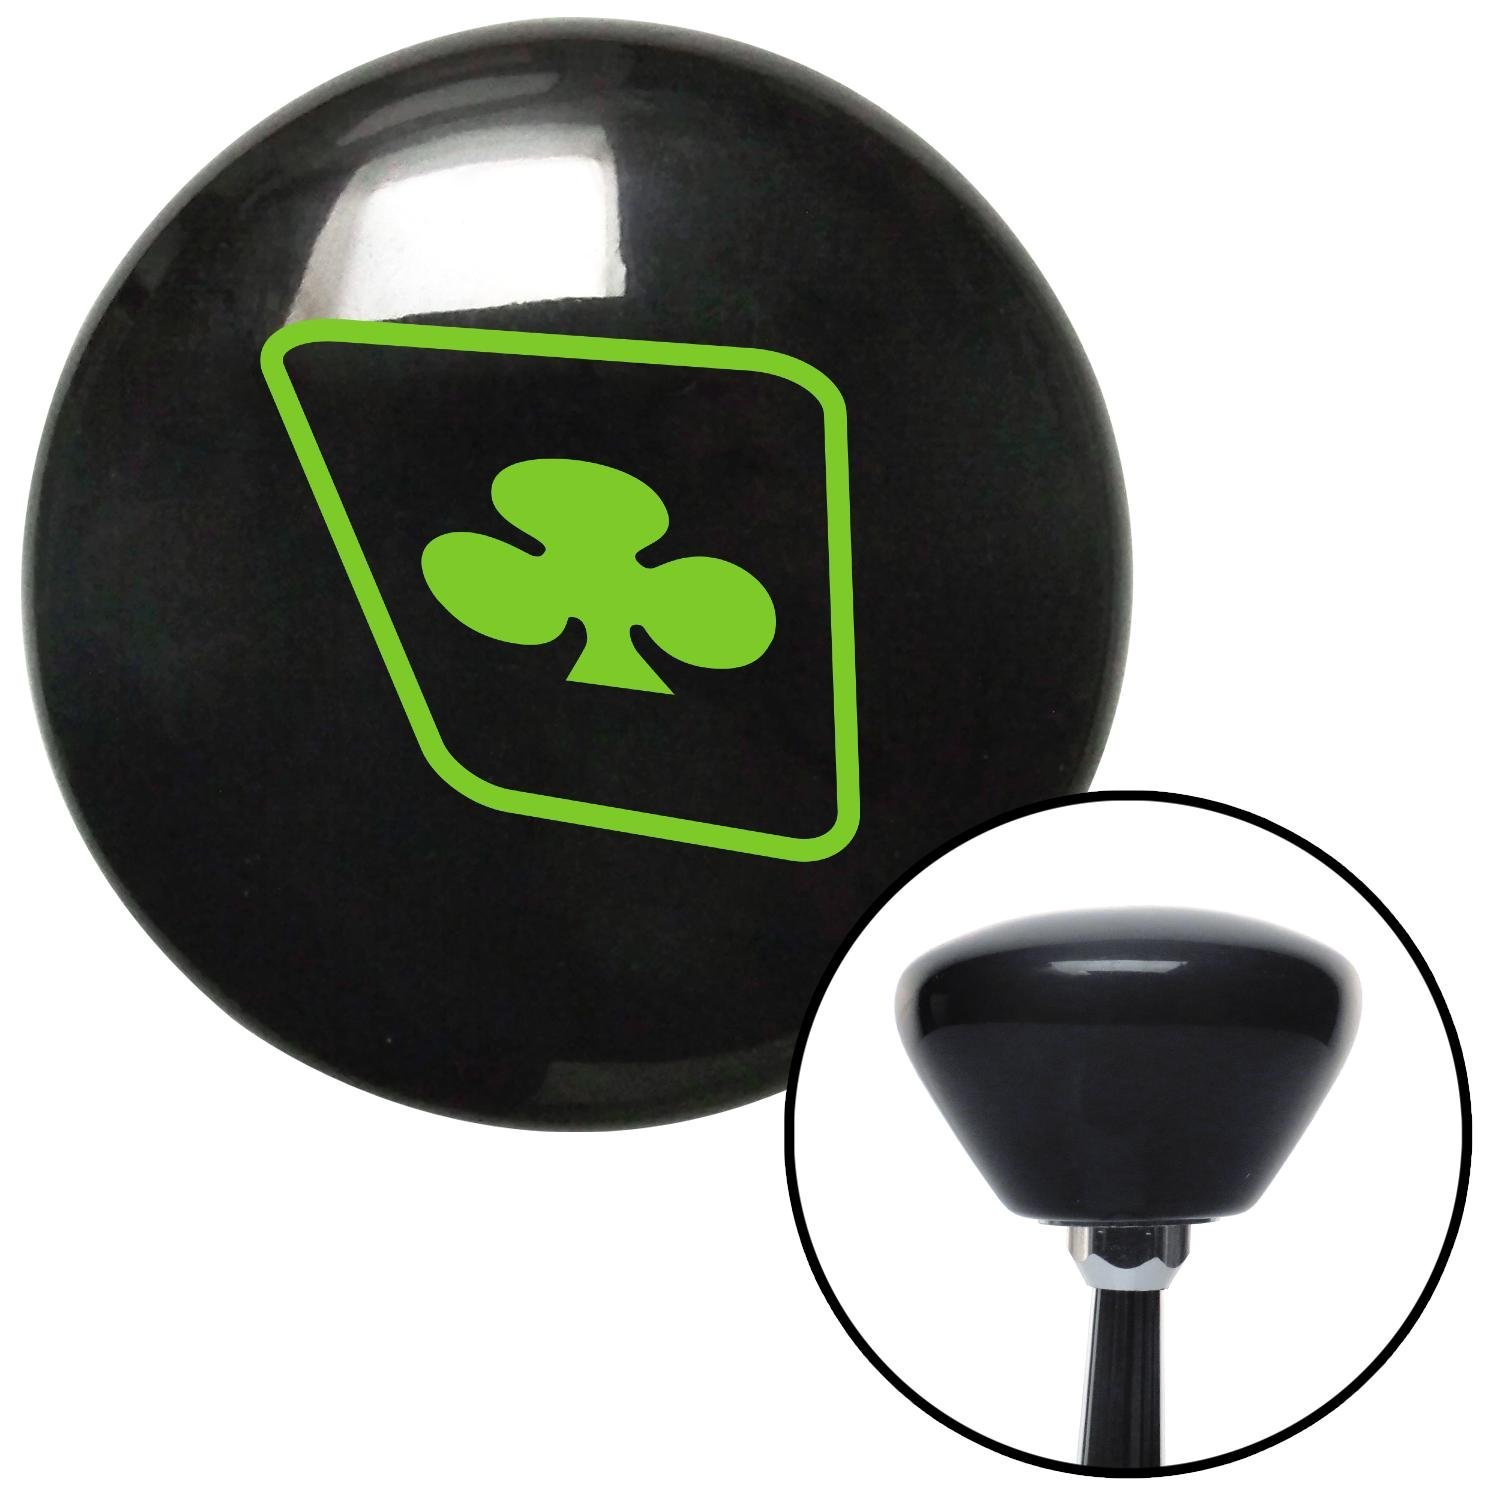 American Shifter 144393 Black Retro Shift Knob with M16 x 1.5 Insert Green Clubs on a Card